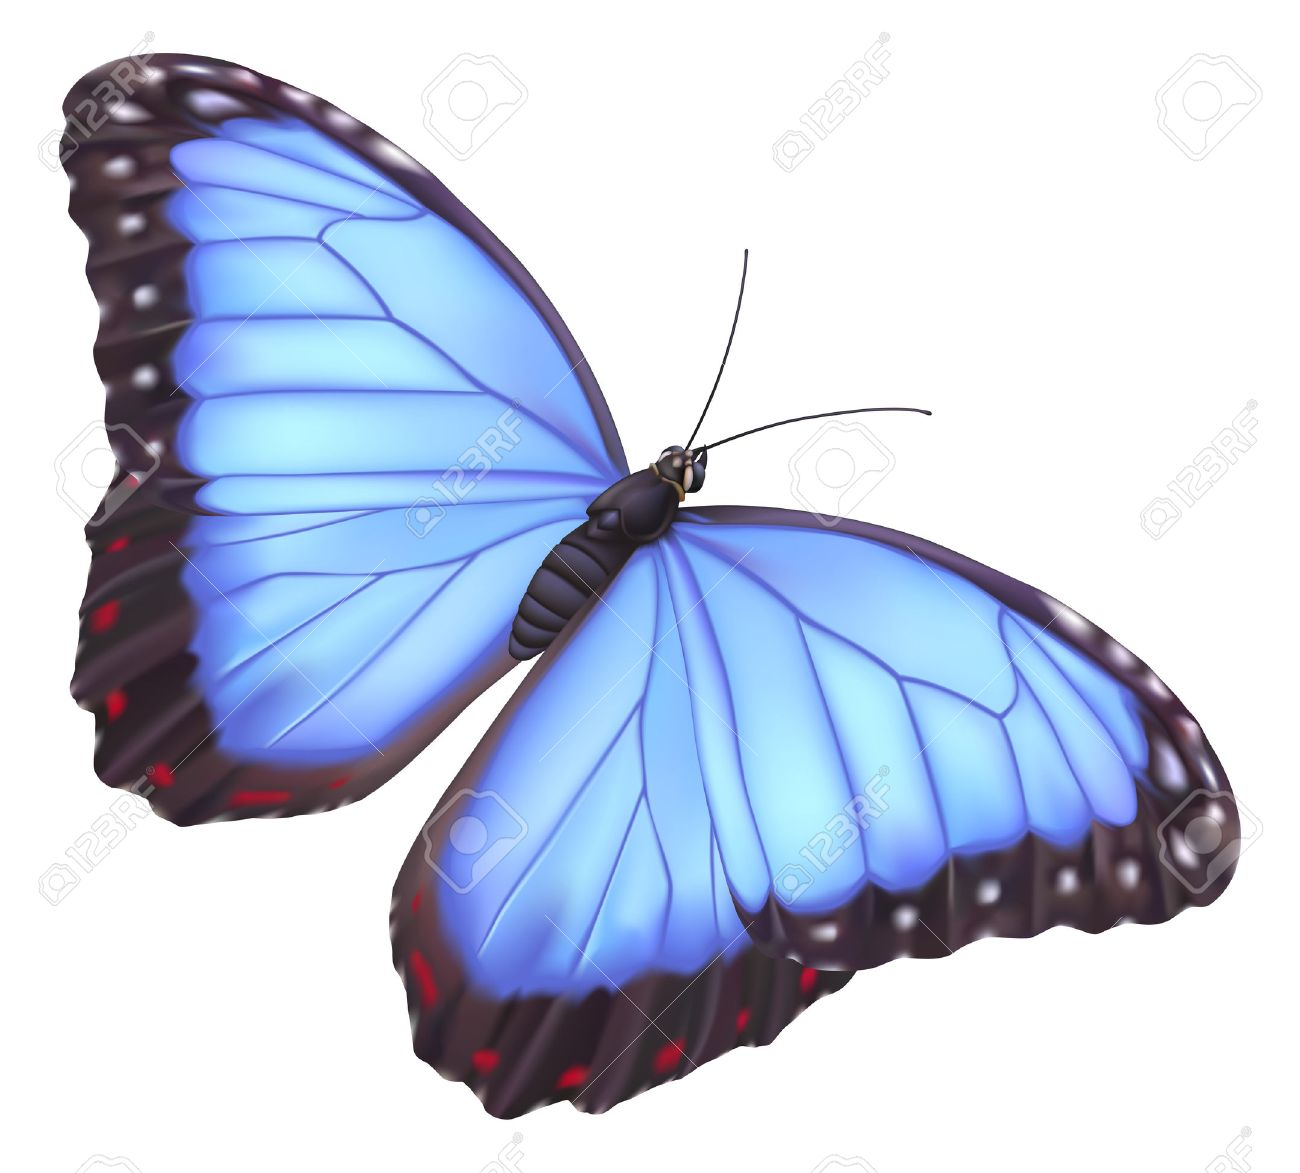 1300x1173 Illustration Of A Beautiful Blue Morpho Butterfly Royalty Free